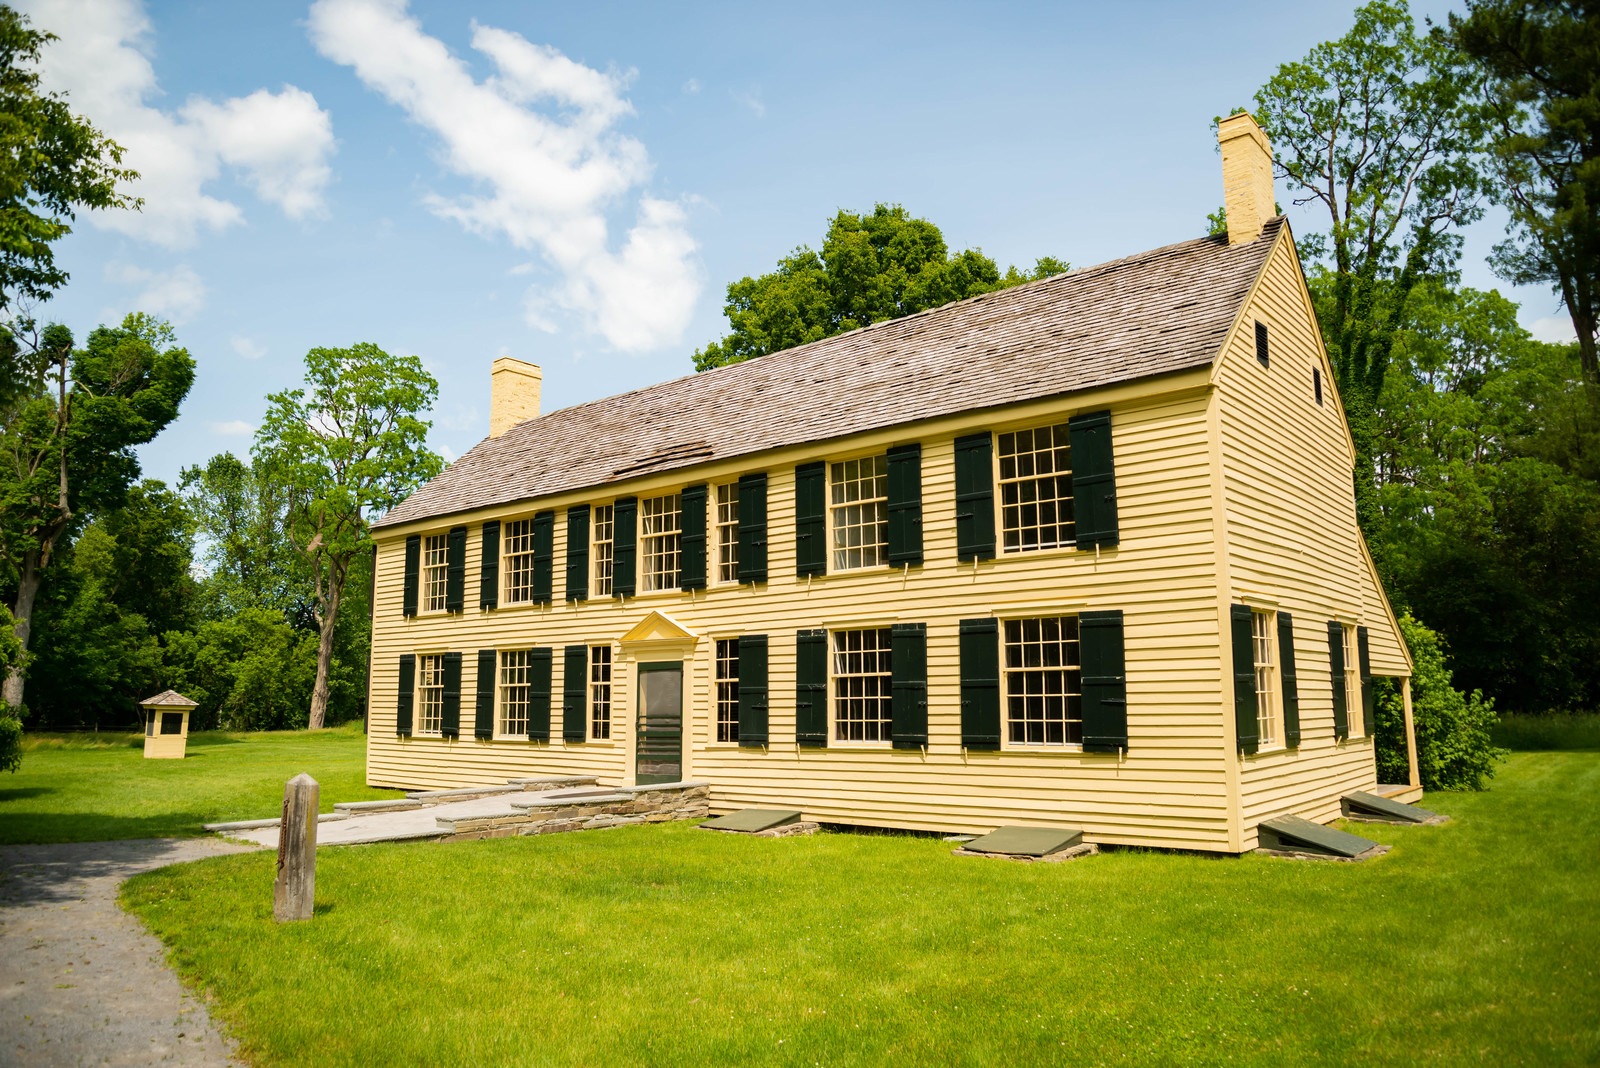 Yellow house with black shutters, General schuyer historical house in saratoga ny